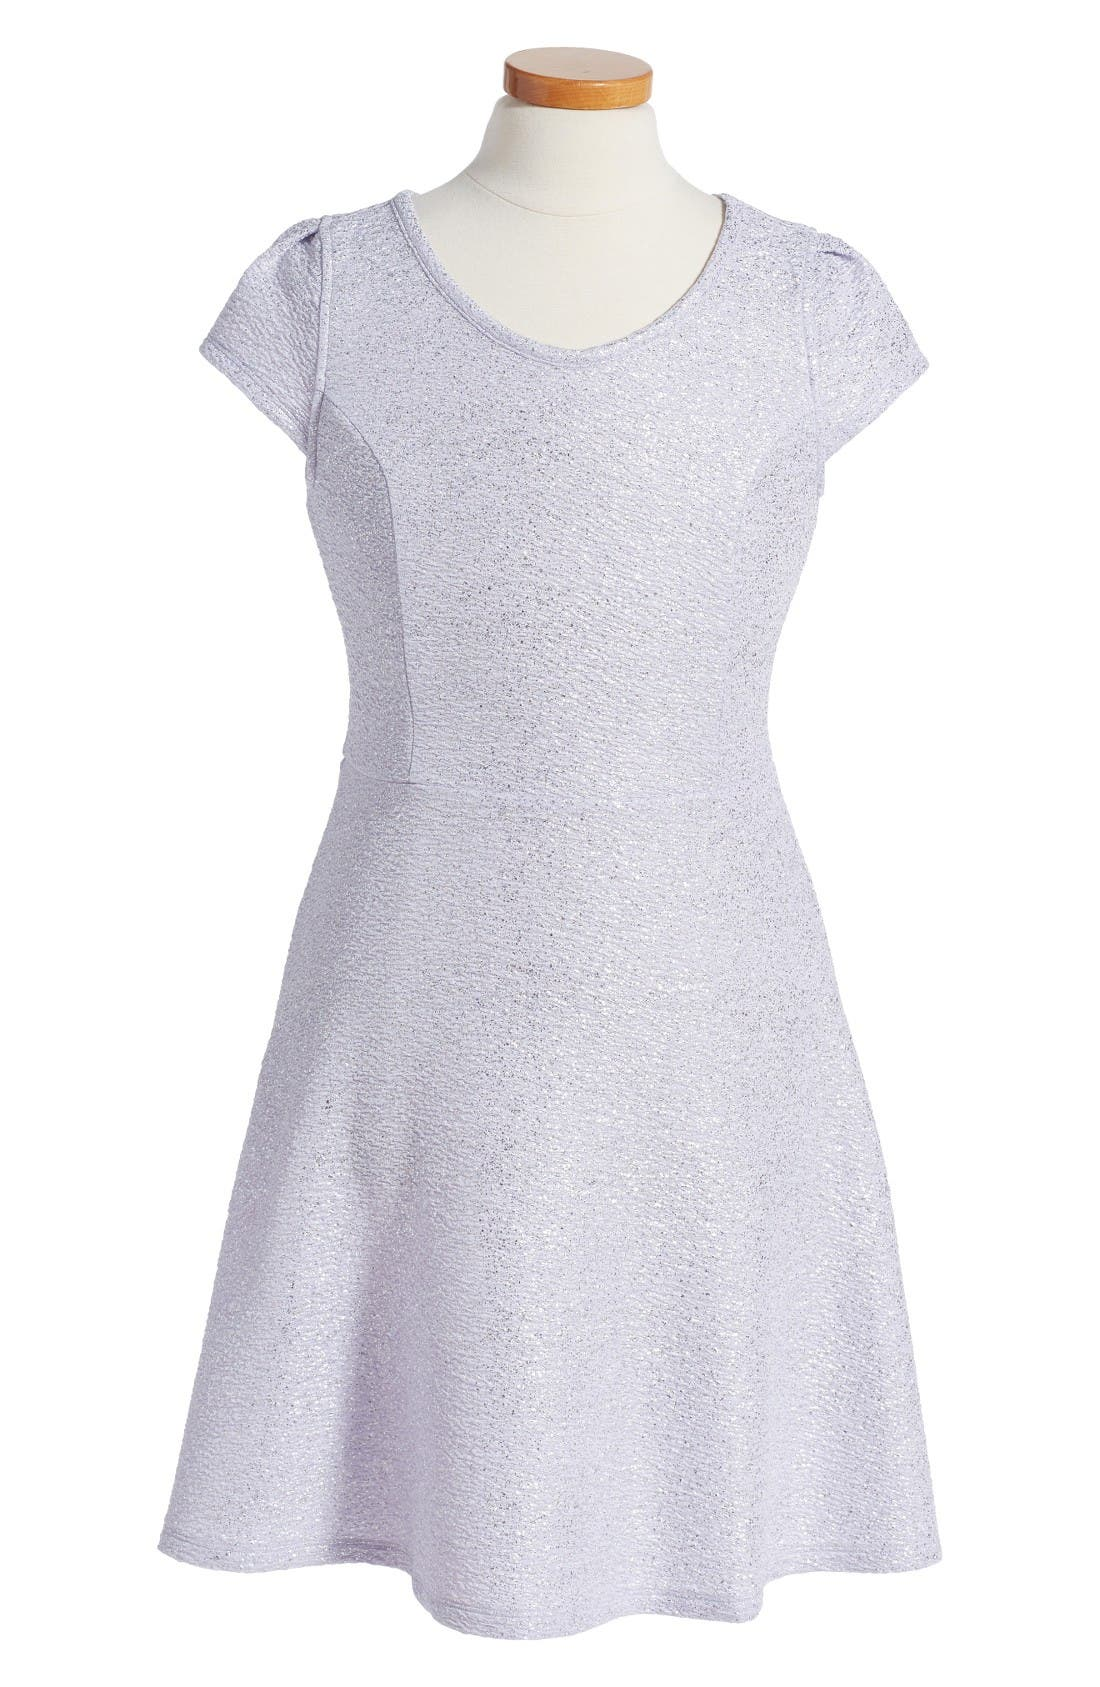 RUBY & BLOOM Glimmer Knit Dress